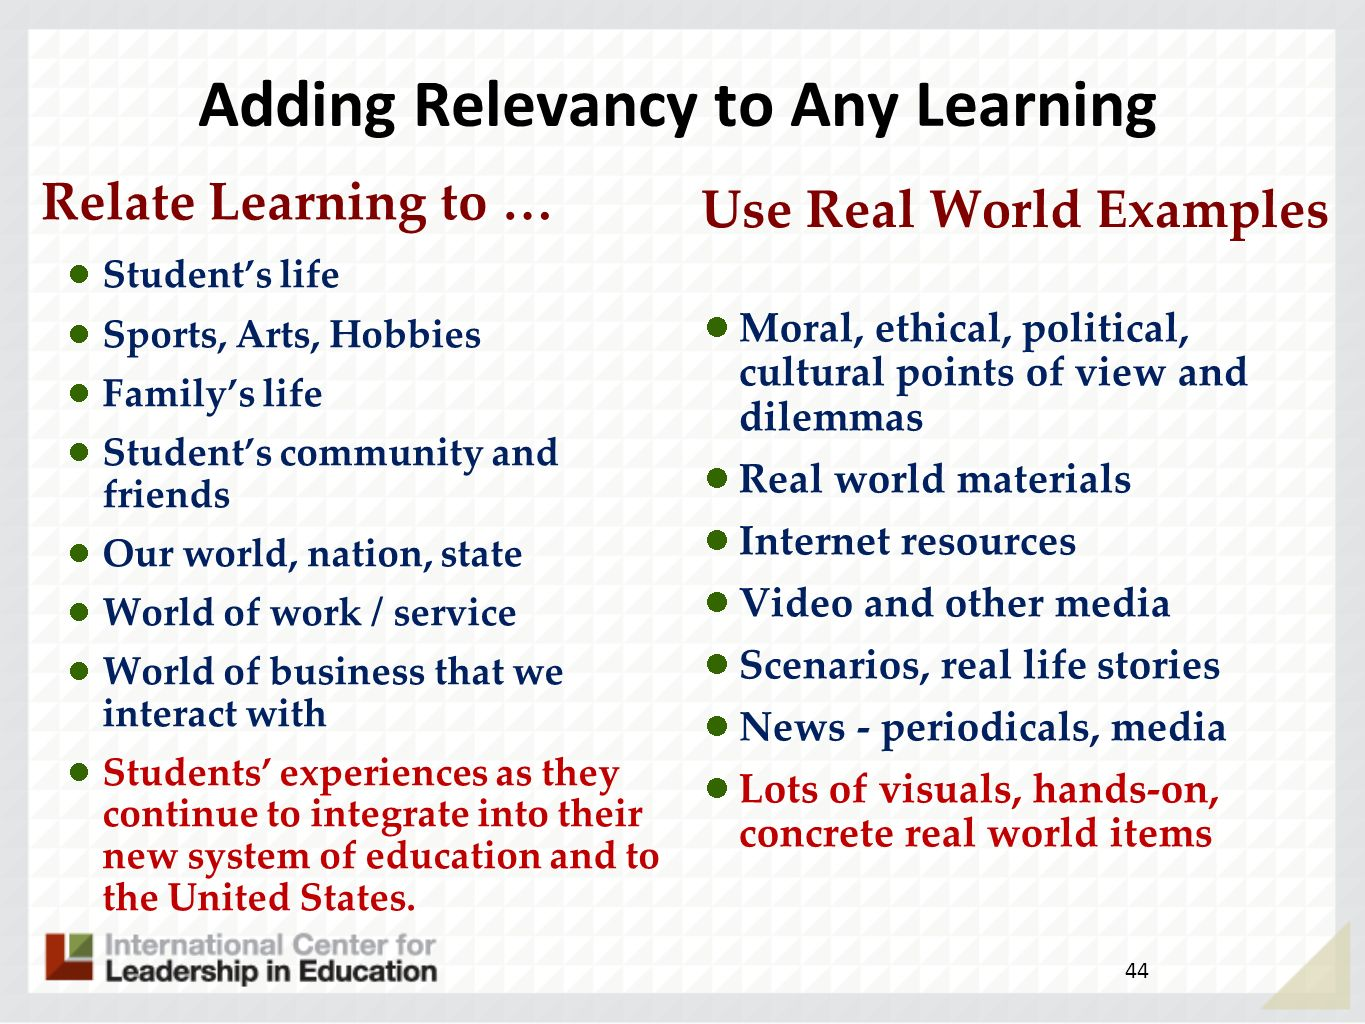 A Relevant Lesson Answers: What am I Learning? Why am I learning it? How will I use it? 43